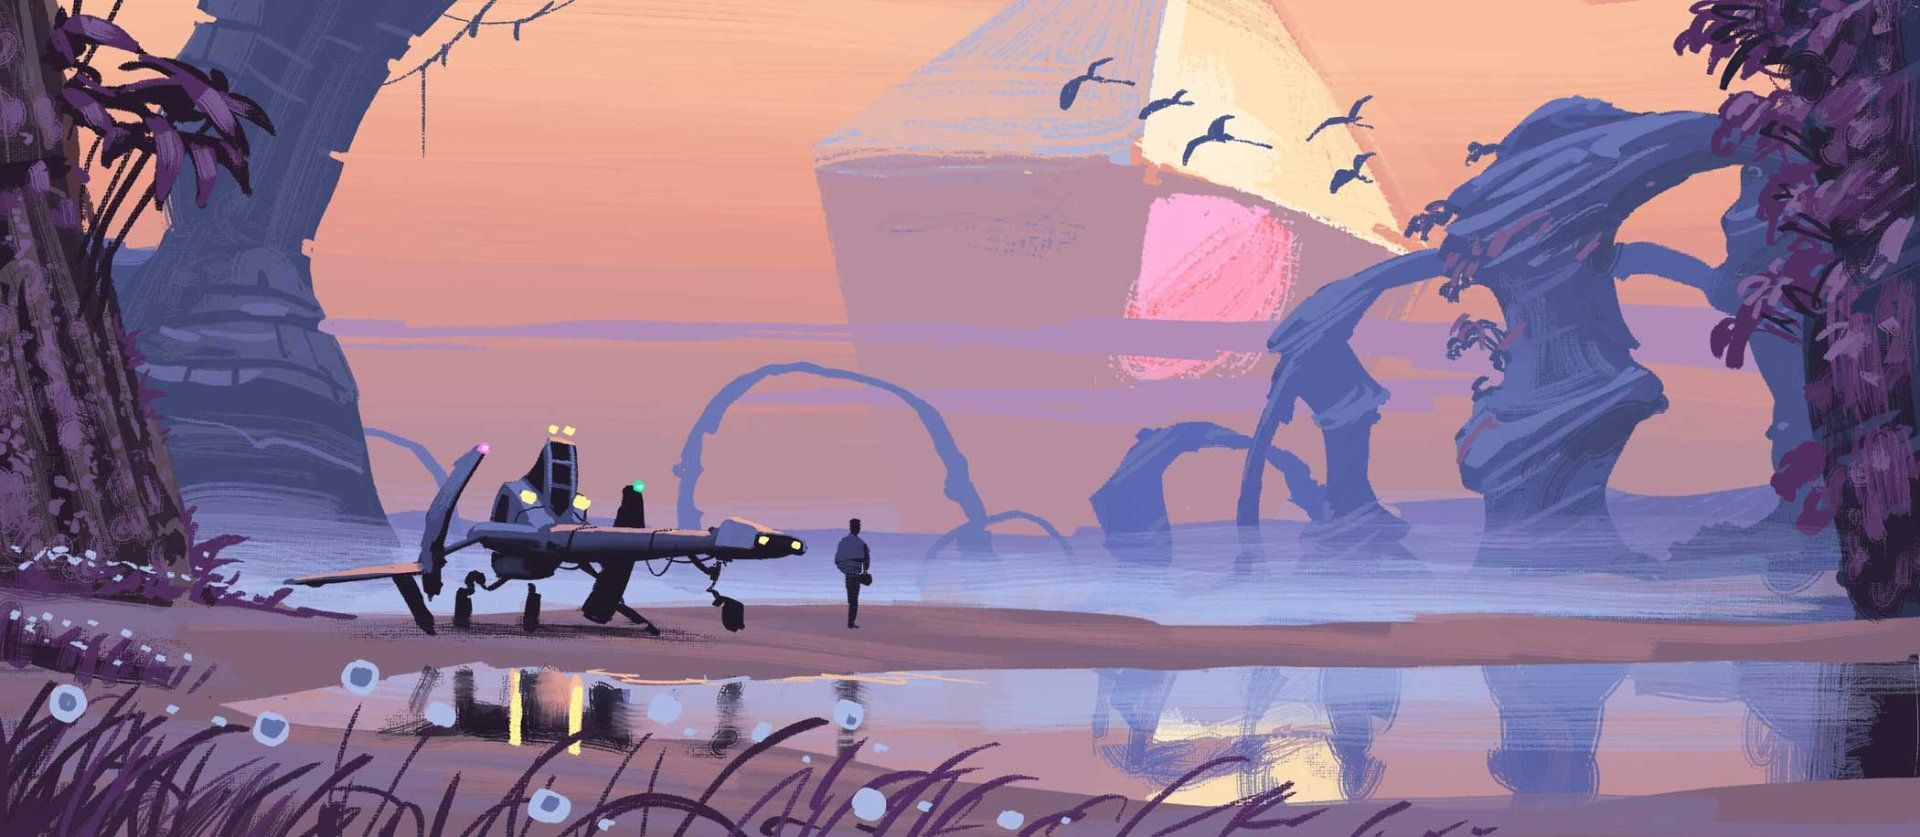 See The Artwork That Inspired No Man S Sky In 2020 Sky Art No